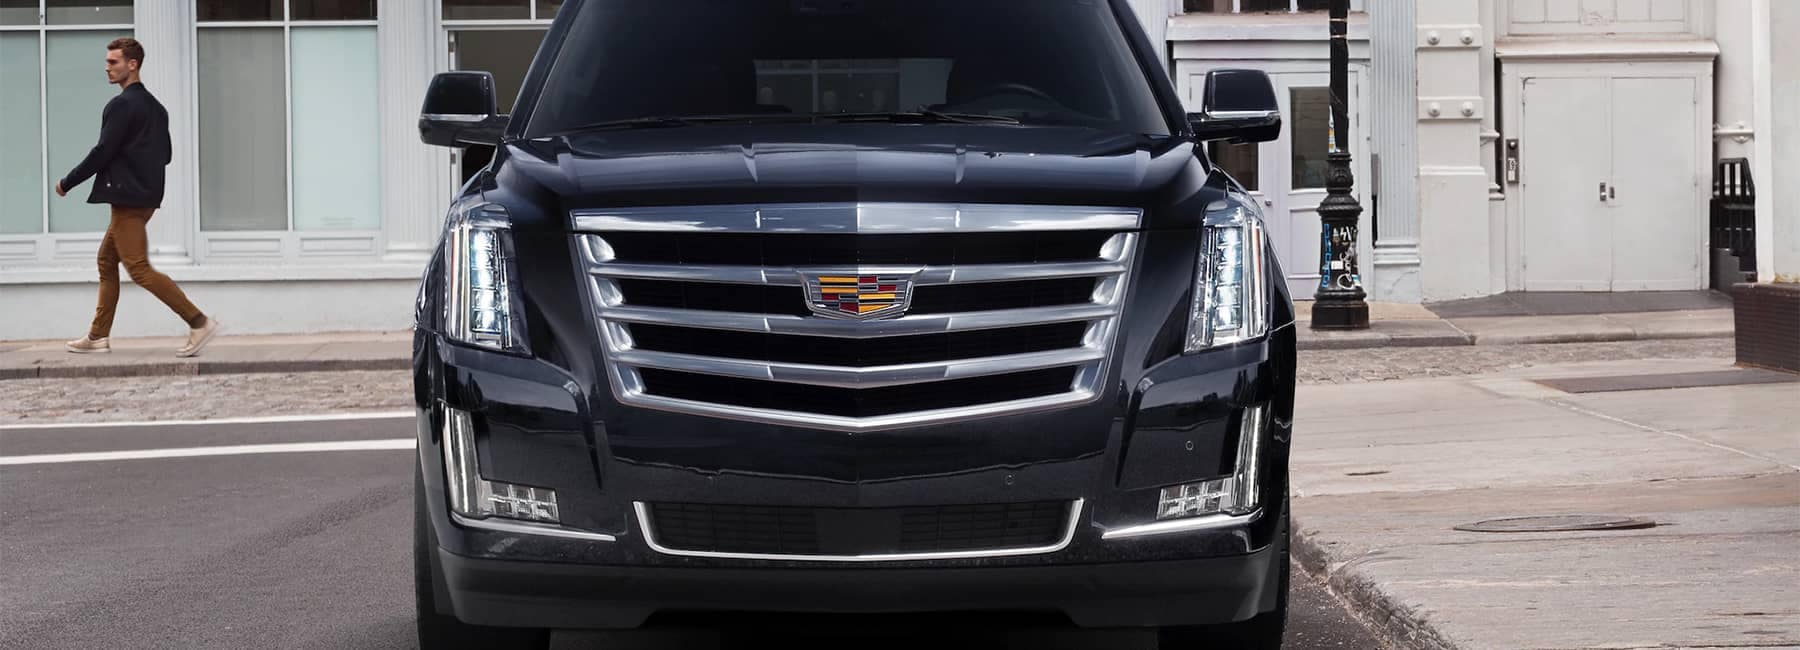 2020 Cadillac Escalade Full-Size SUV Front Grille View